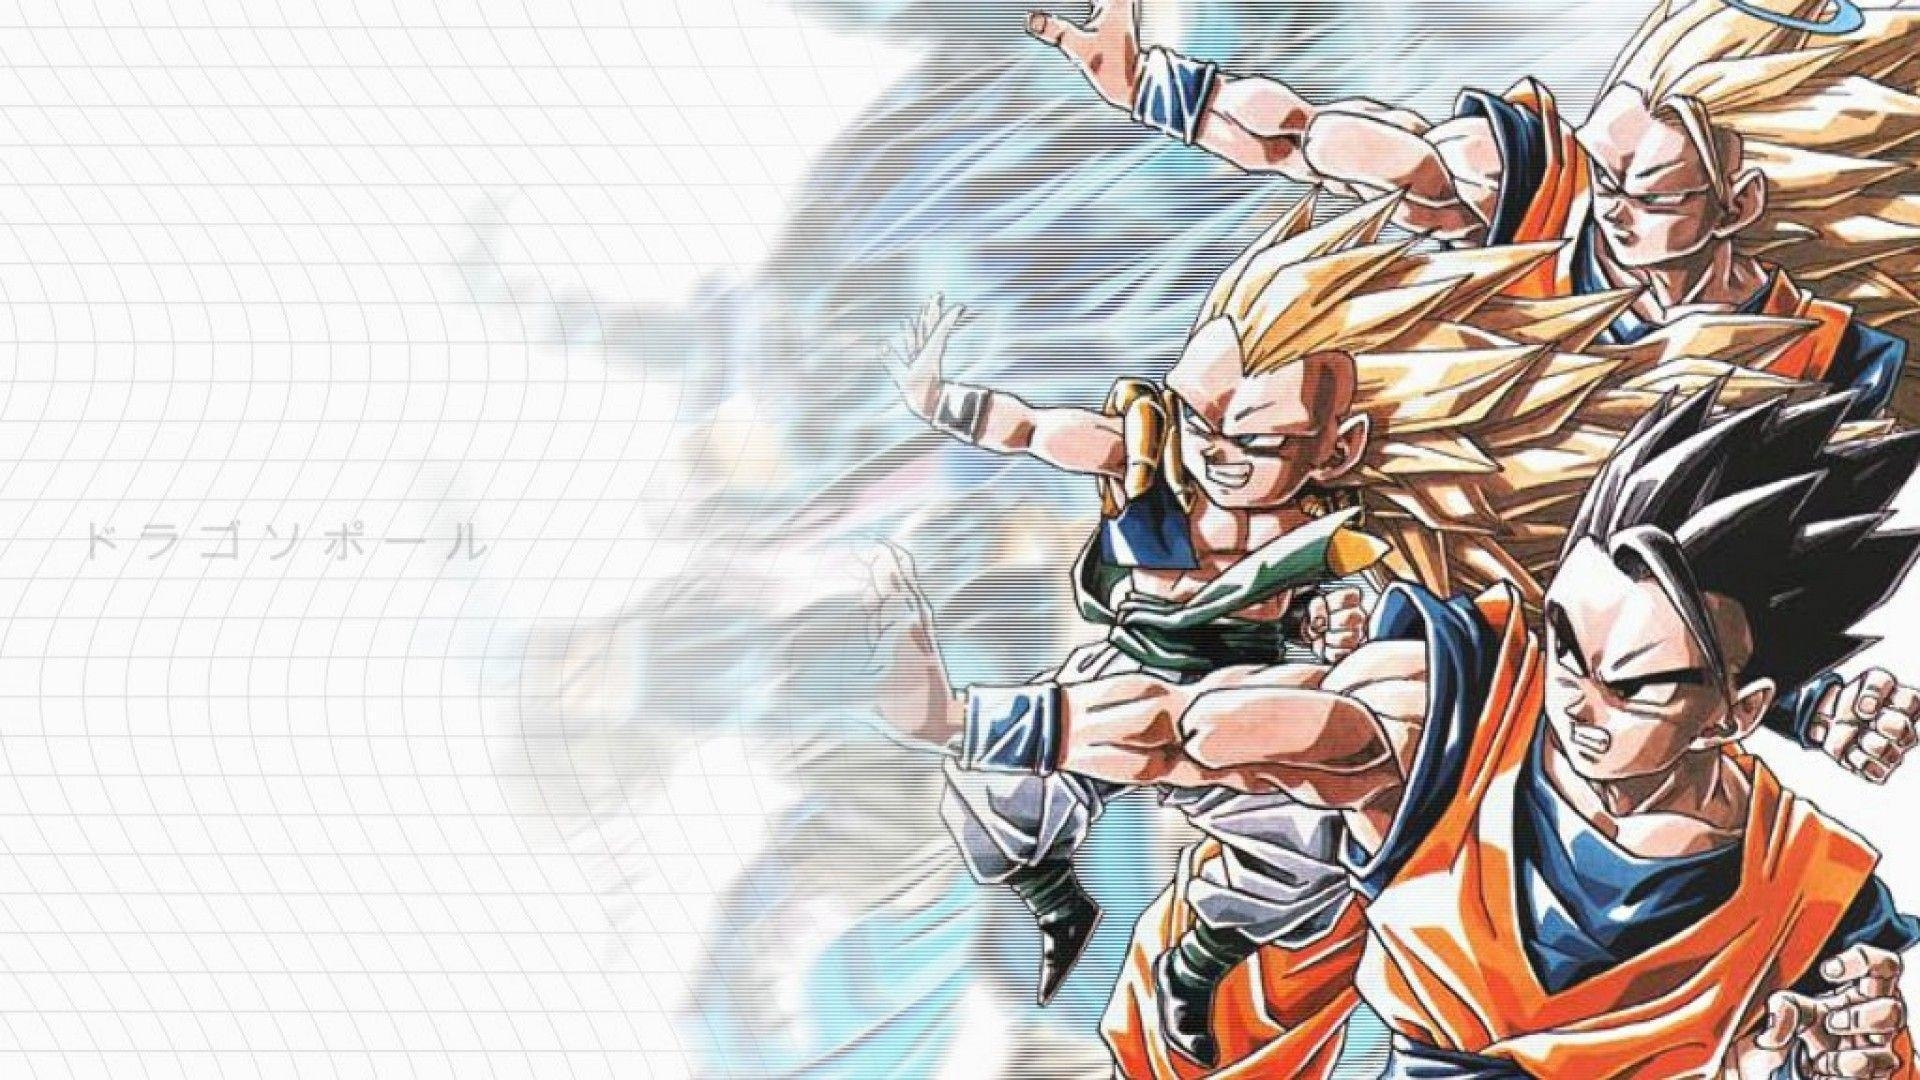 dragon ball z wallpapers hd - wallpaper cave